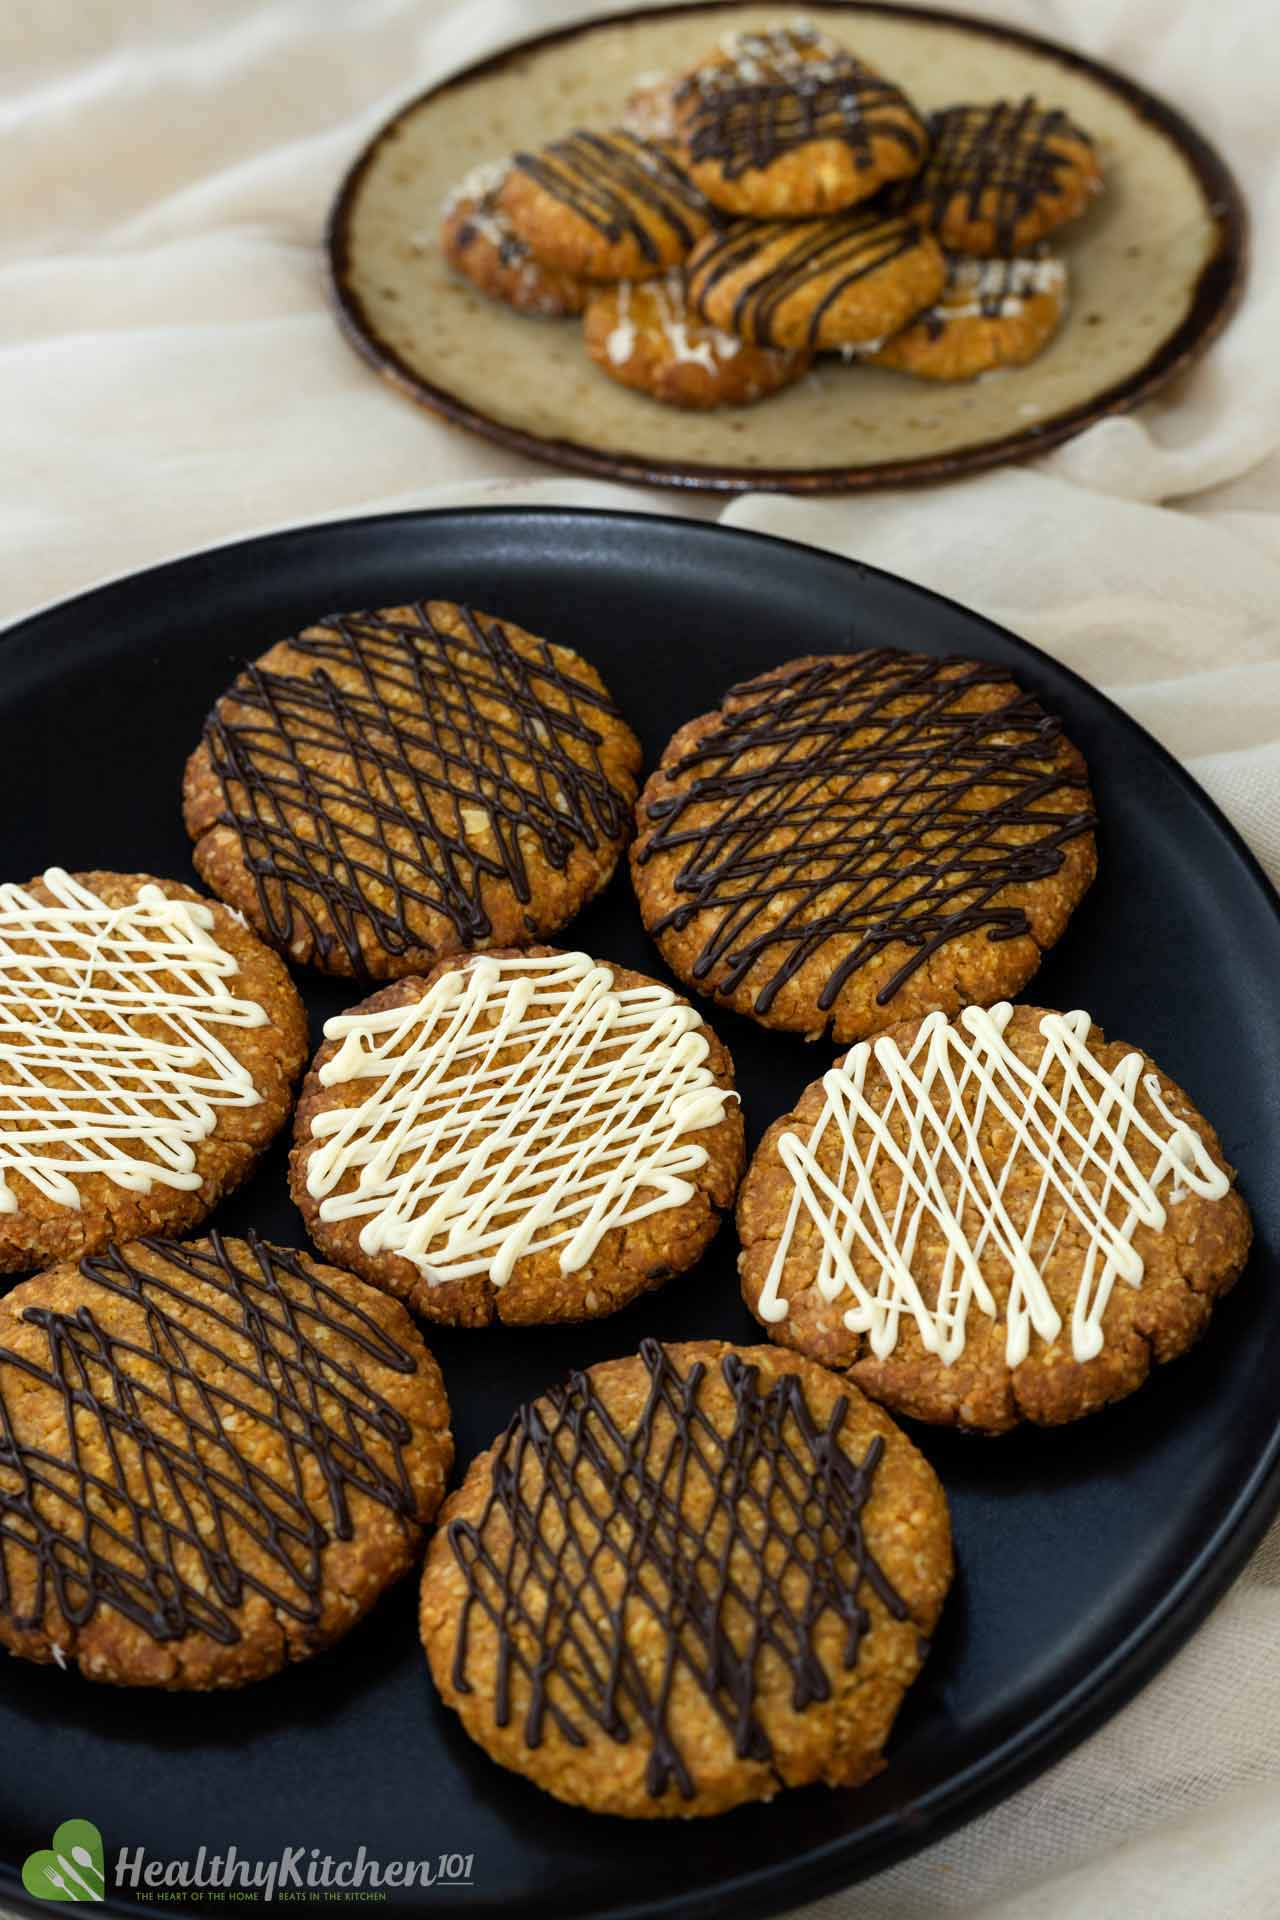 a black plate with round pumpkin cookies on it. Some cookies have a white drizzle and some have brown drizzle